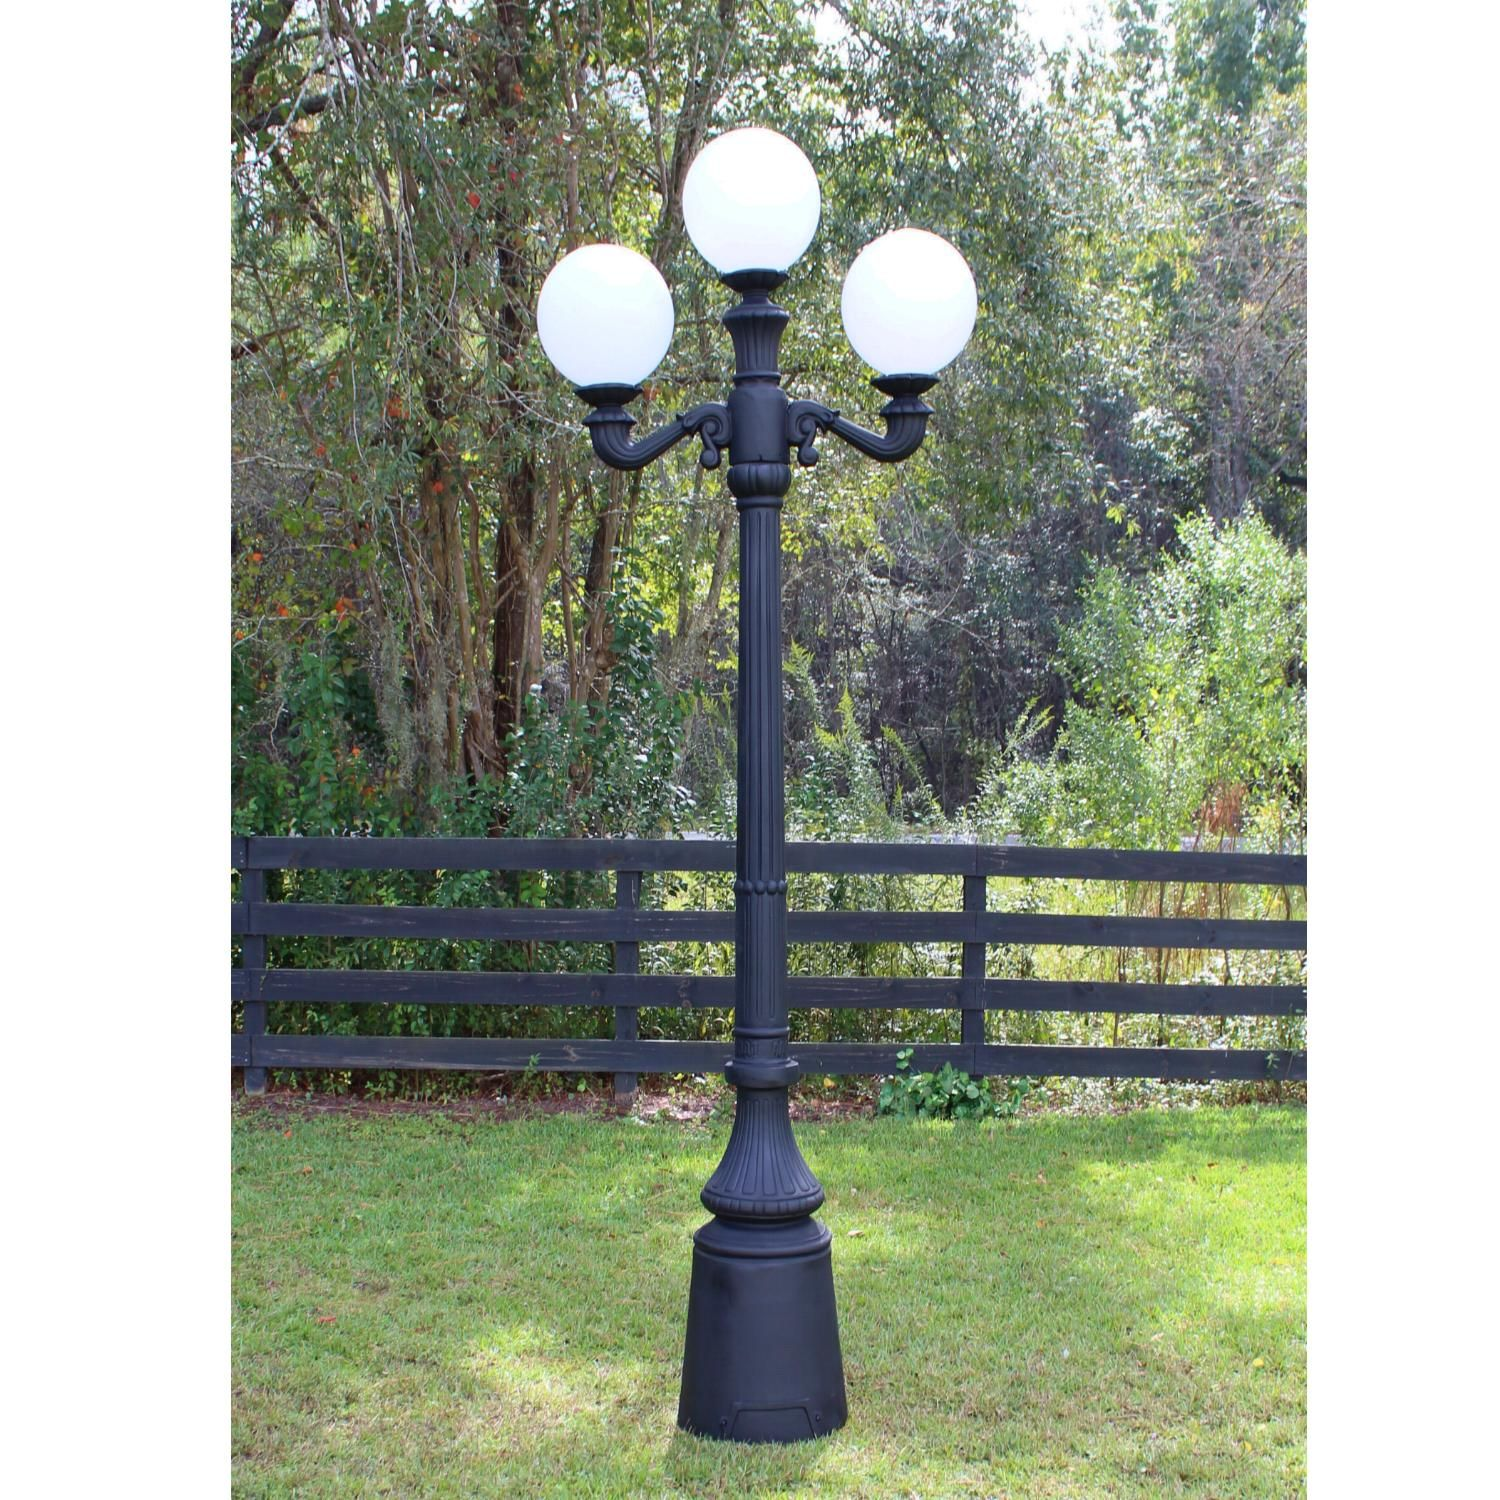 Three Ball Pole Light Street Fixture Antique Style Outdoor Vintage